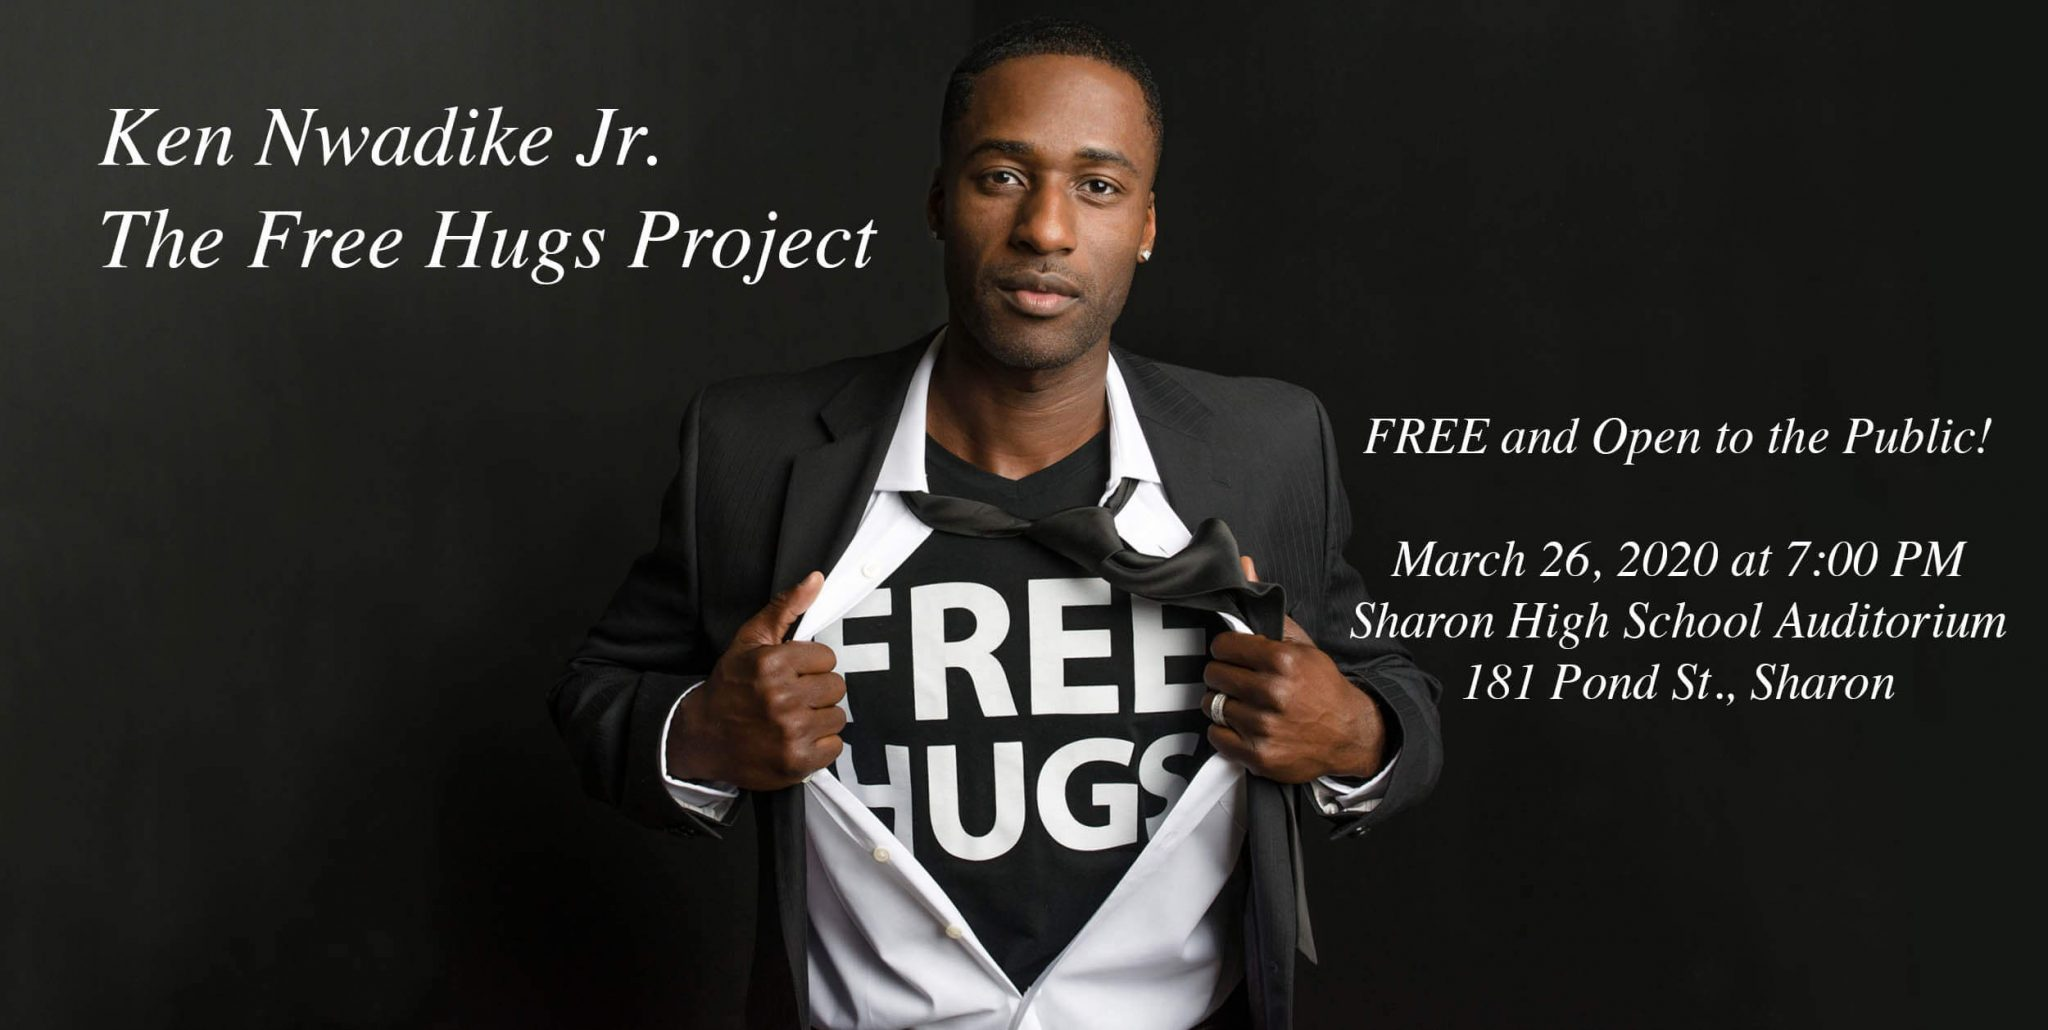 Free Event with Ken Nwadike Jr.- The Free Hugs Guy! March 26, 2020 at 7:00 PM in the Sharon High School Auditorium. All are welcome.